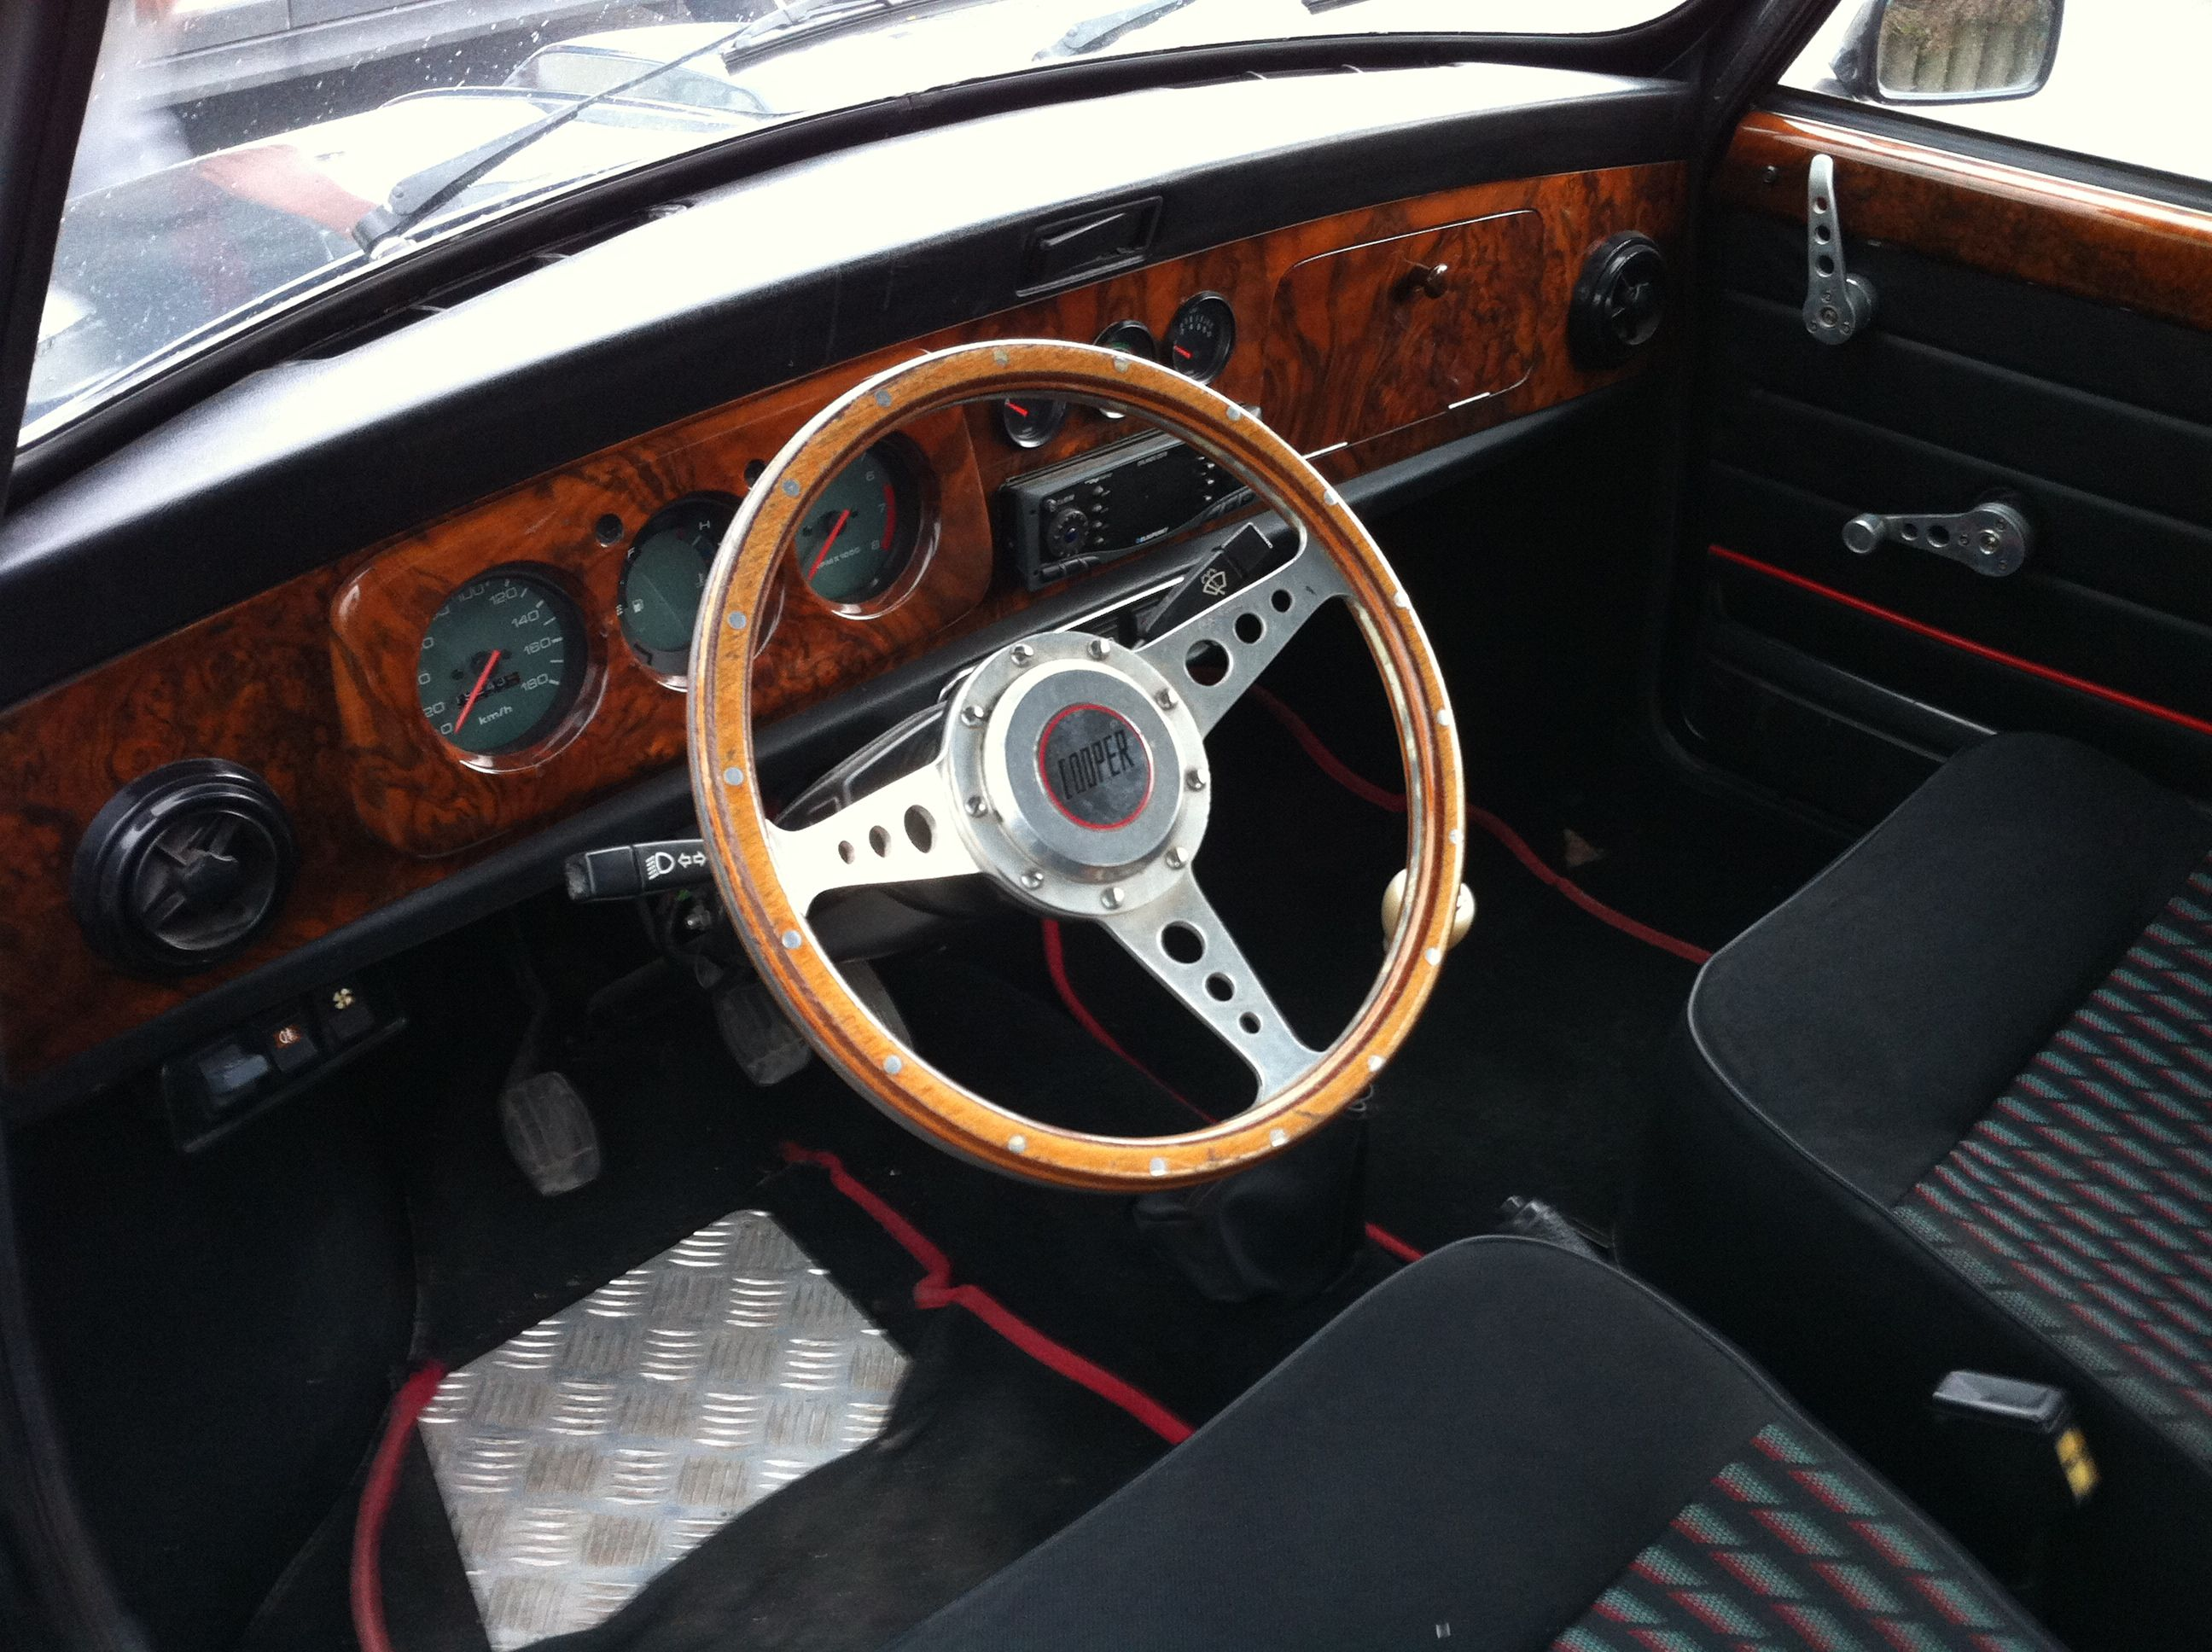 Li geois en mini 1000 de 1979 peut tre for Interieur 80 s